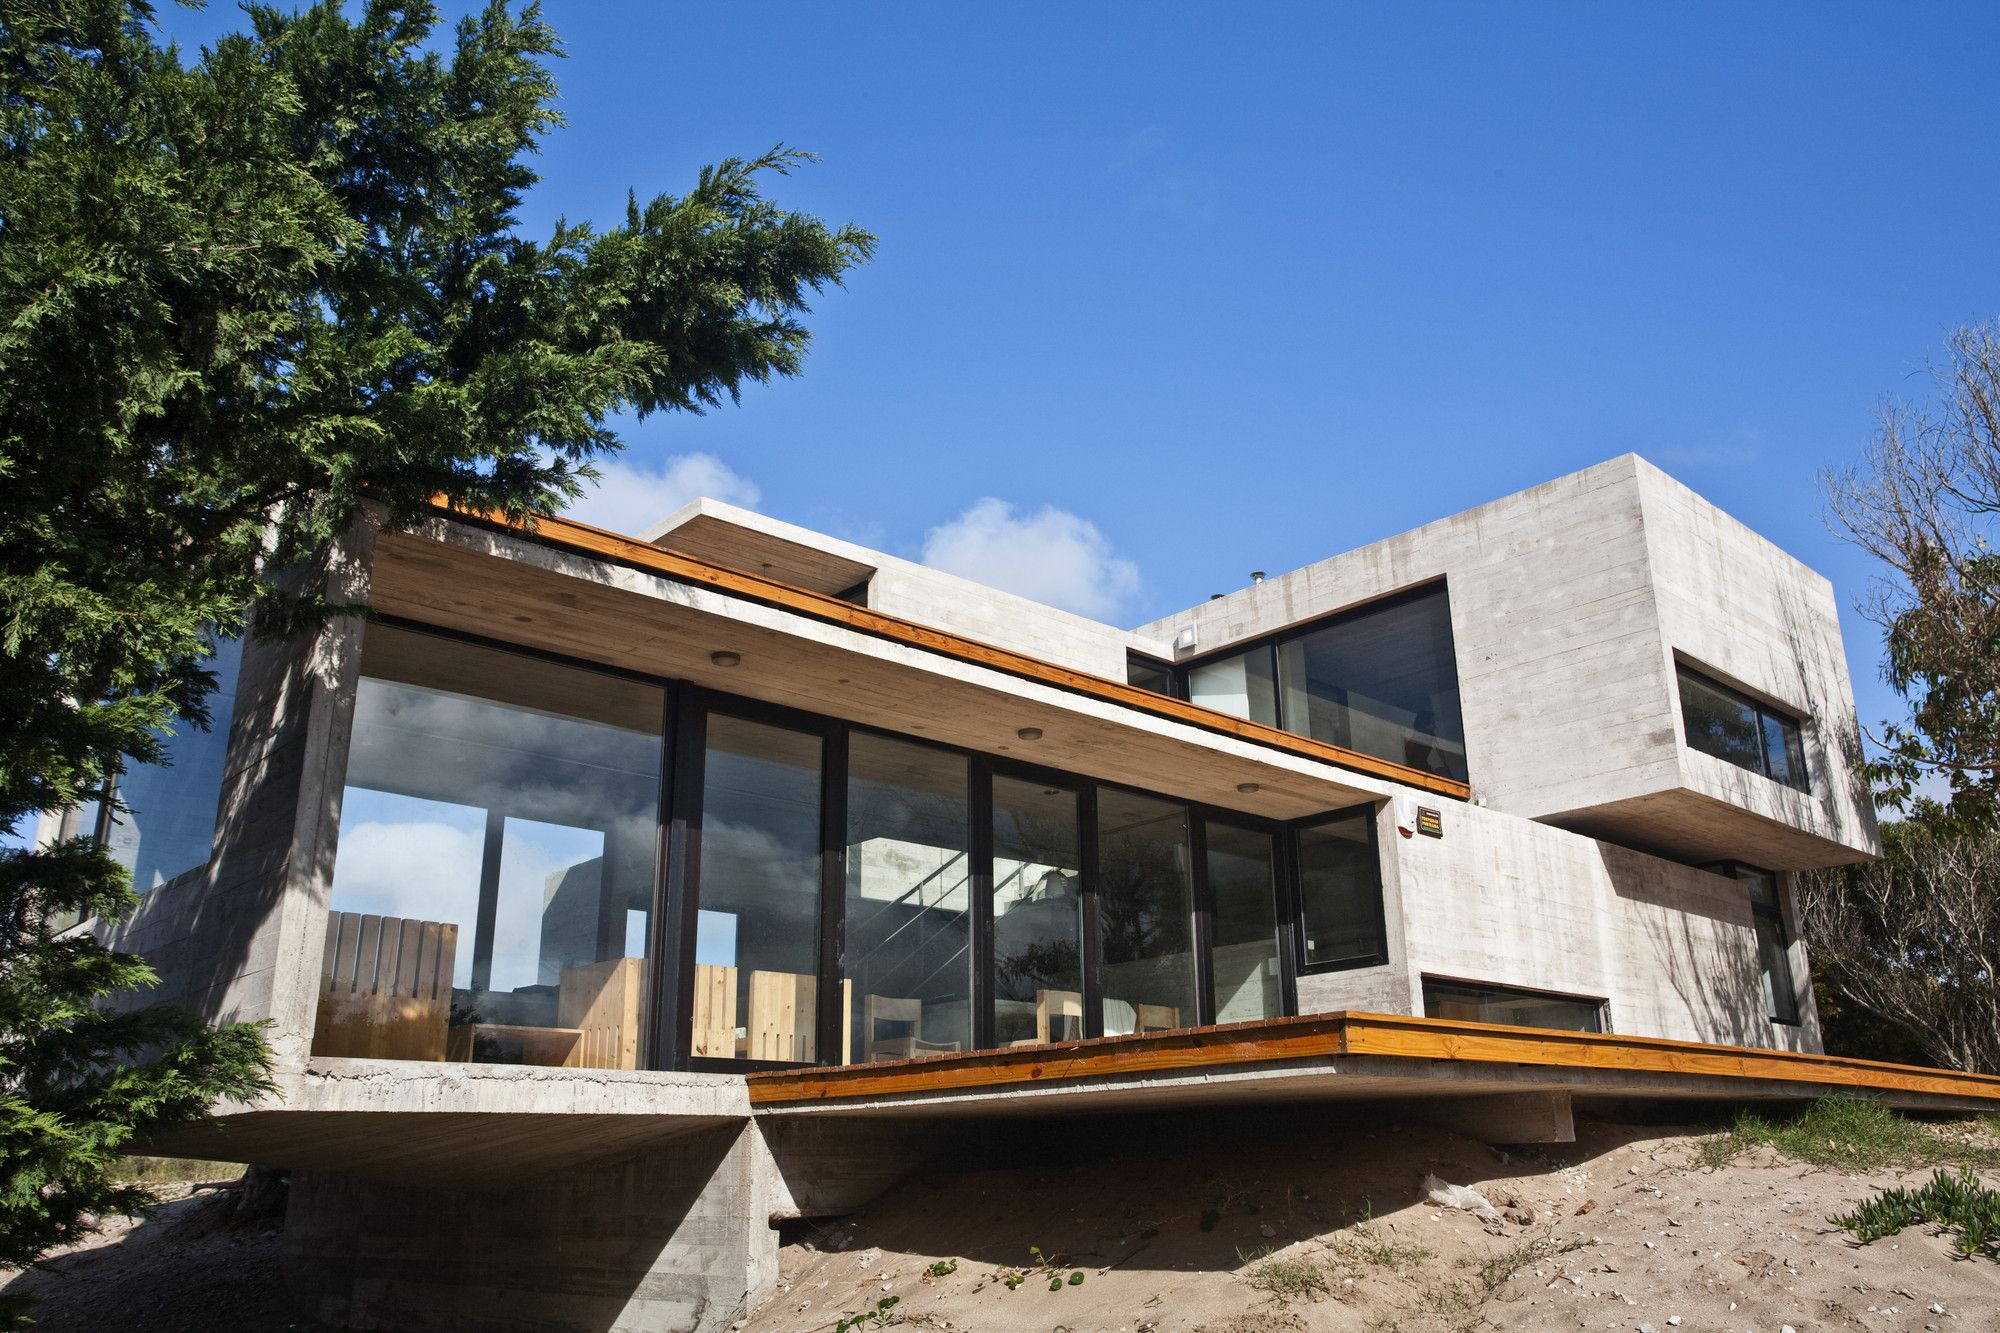 Hausdesign mit zwei schlafzimmern gallery of house on the beach  bak architects    architektur